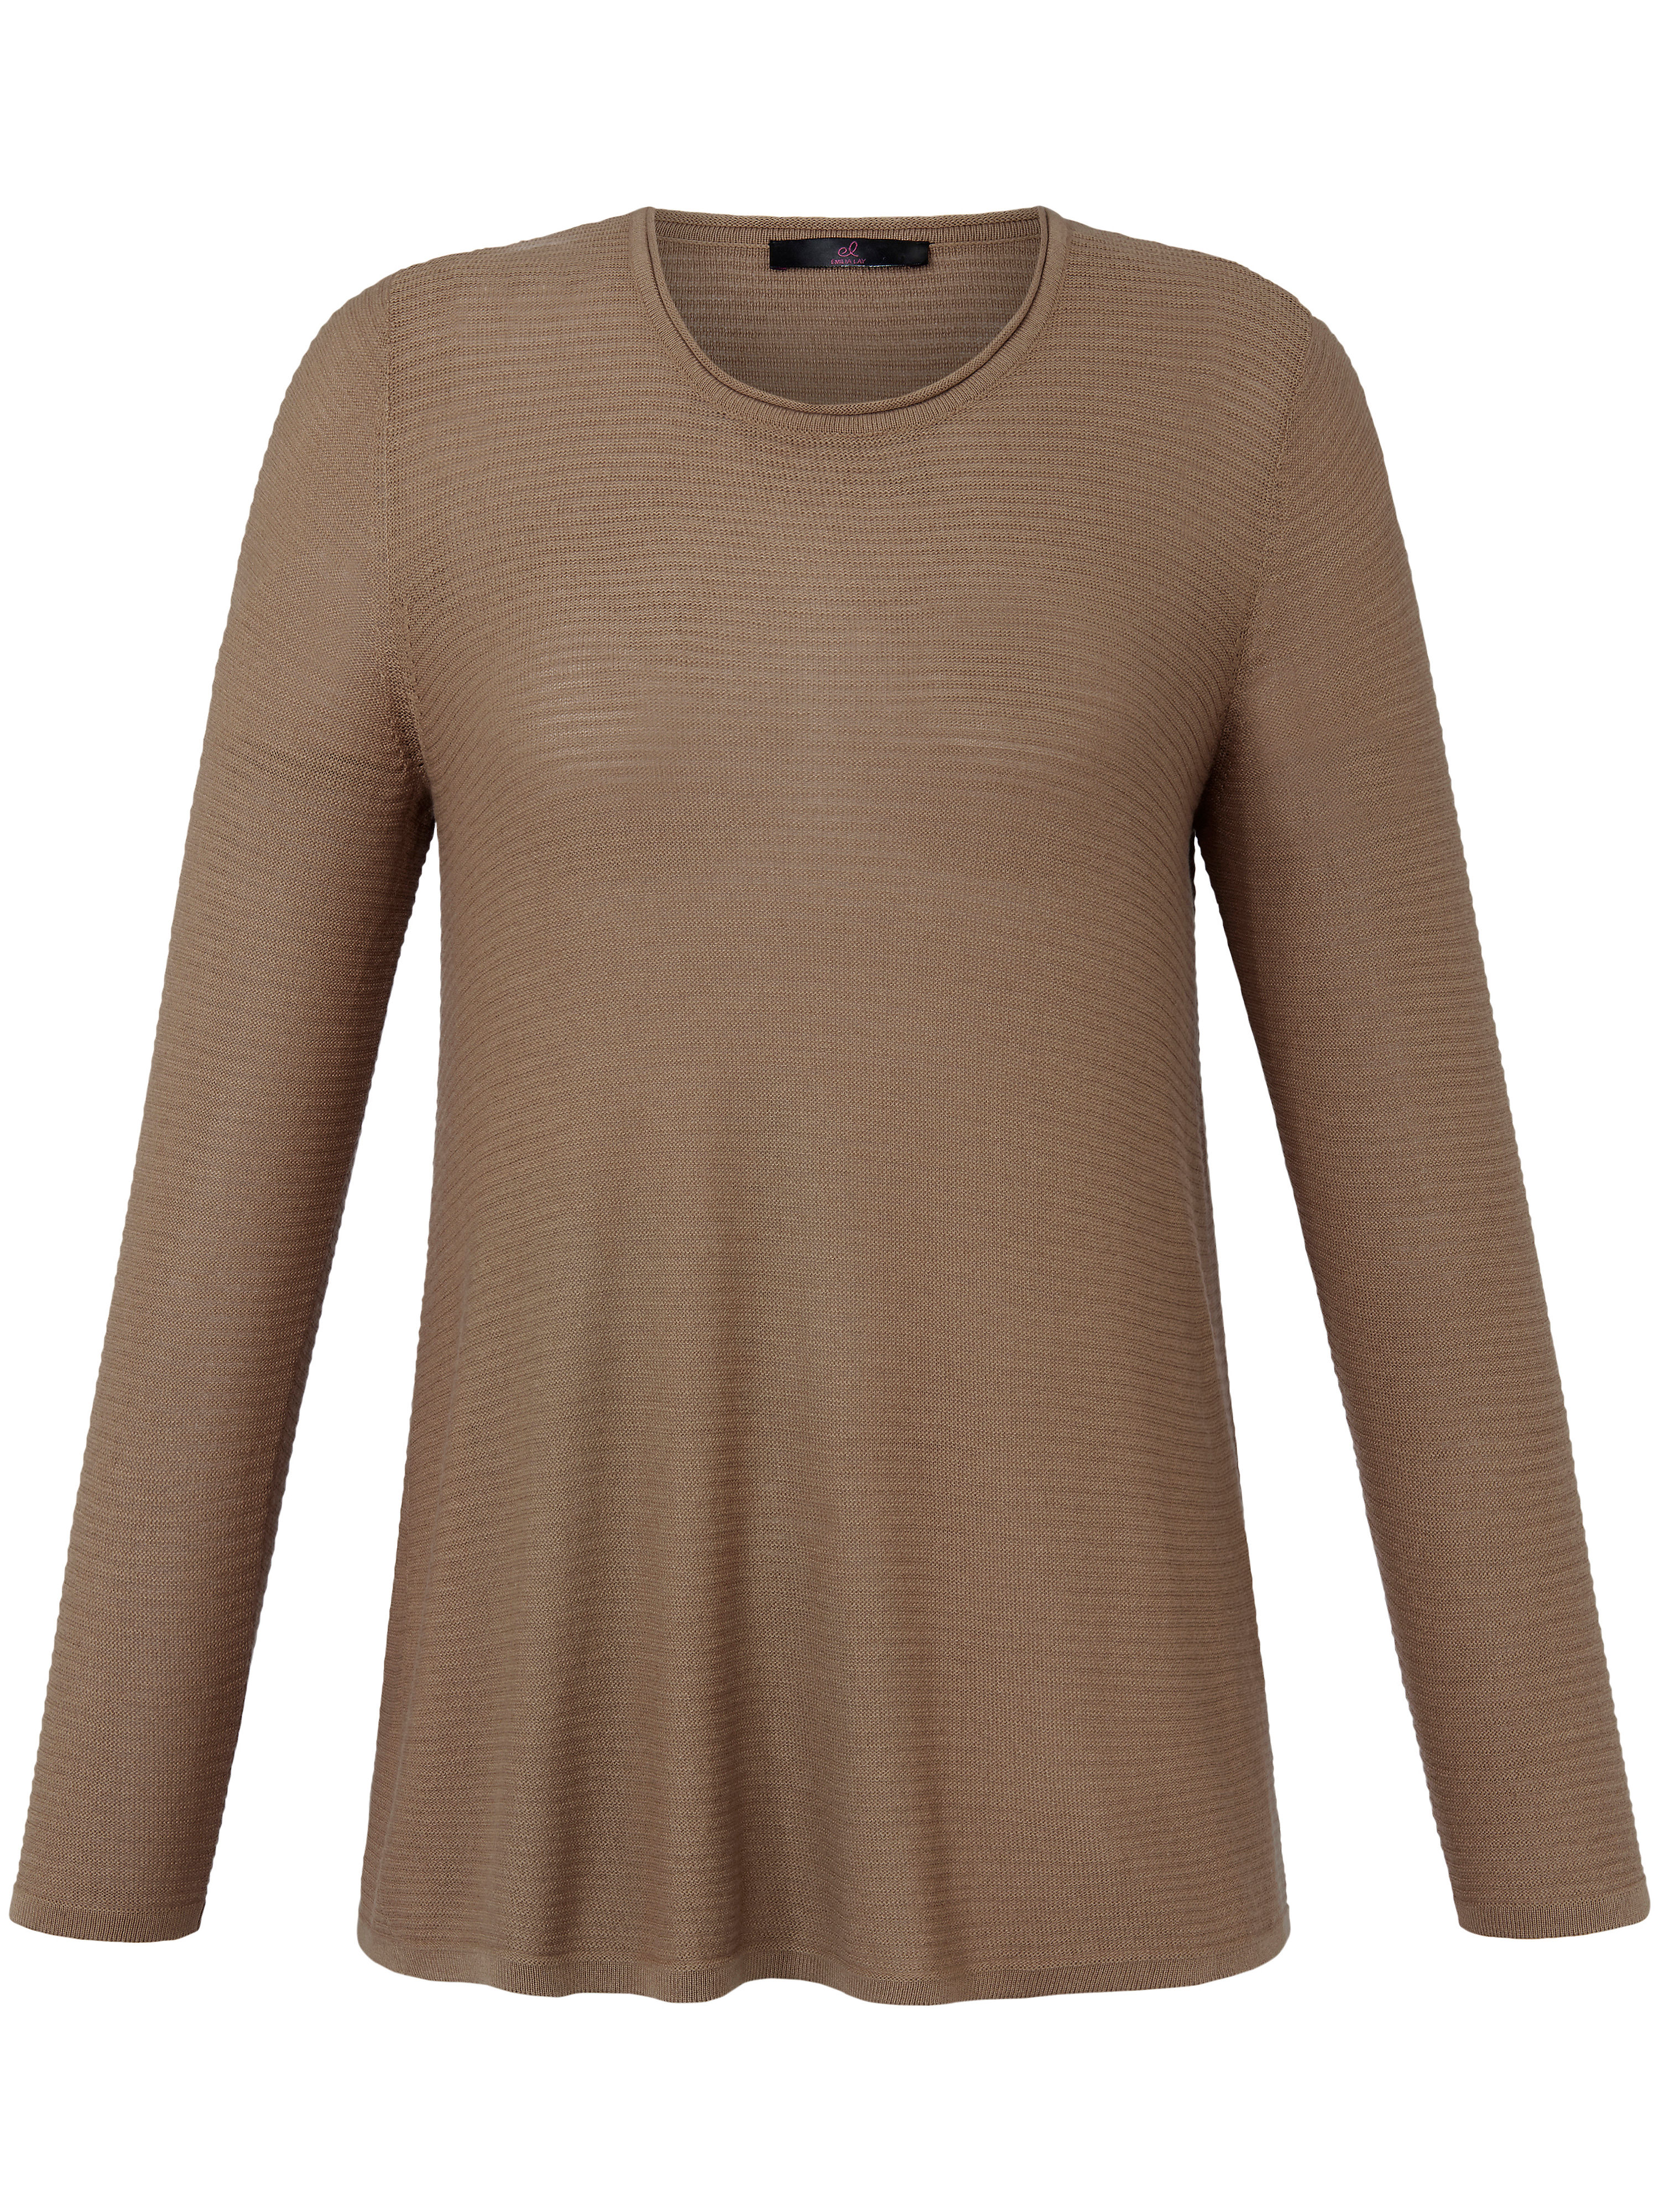 Le pull 100% laine vierge  Anna Aura beige taille 58